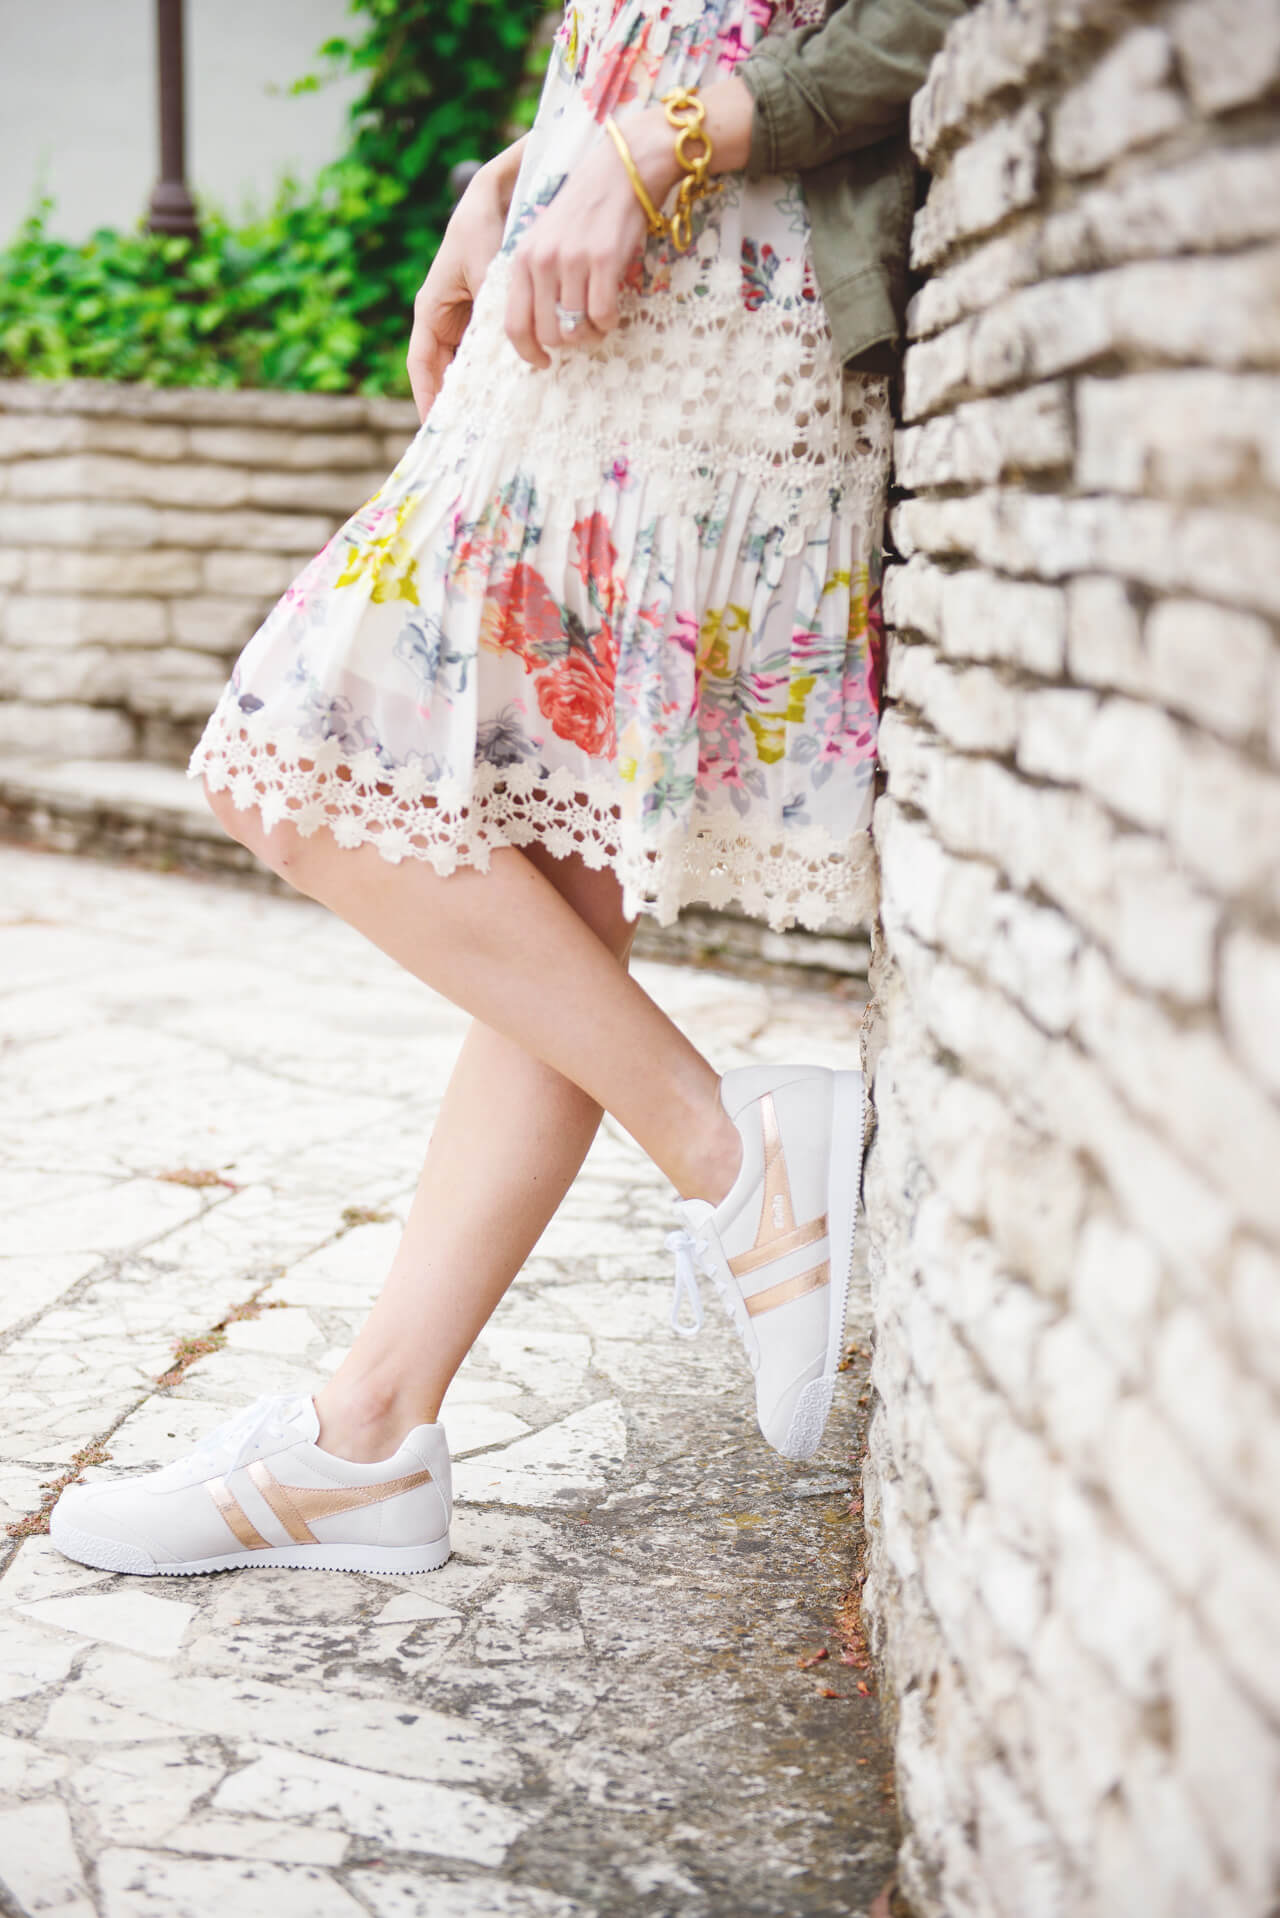 Floral and lace dress paired with Gola sneakers - M Loves M @marmar